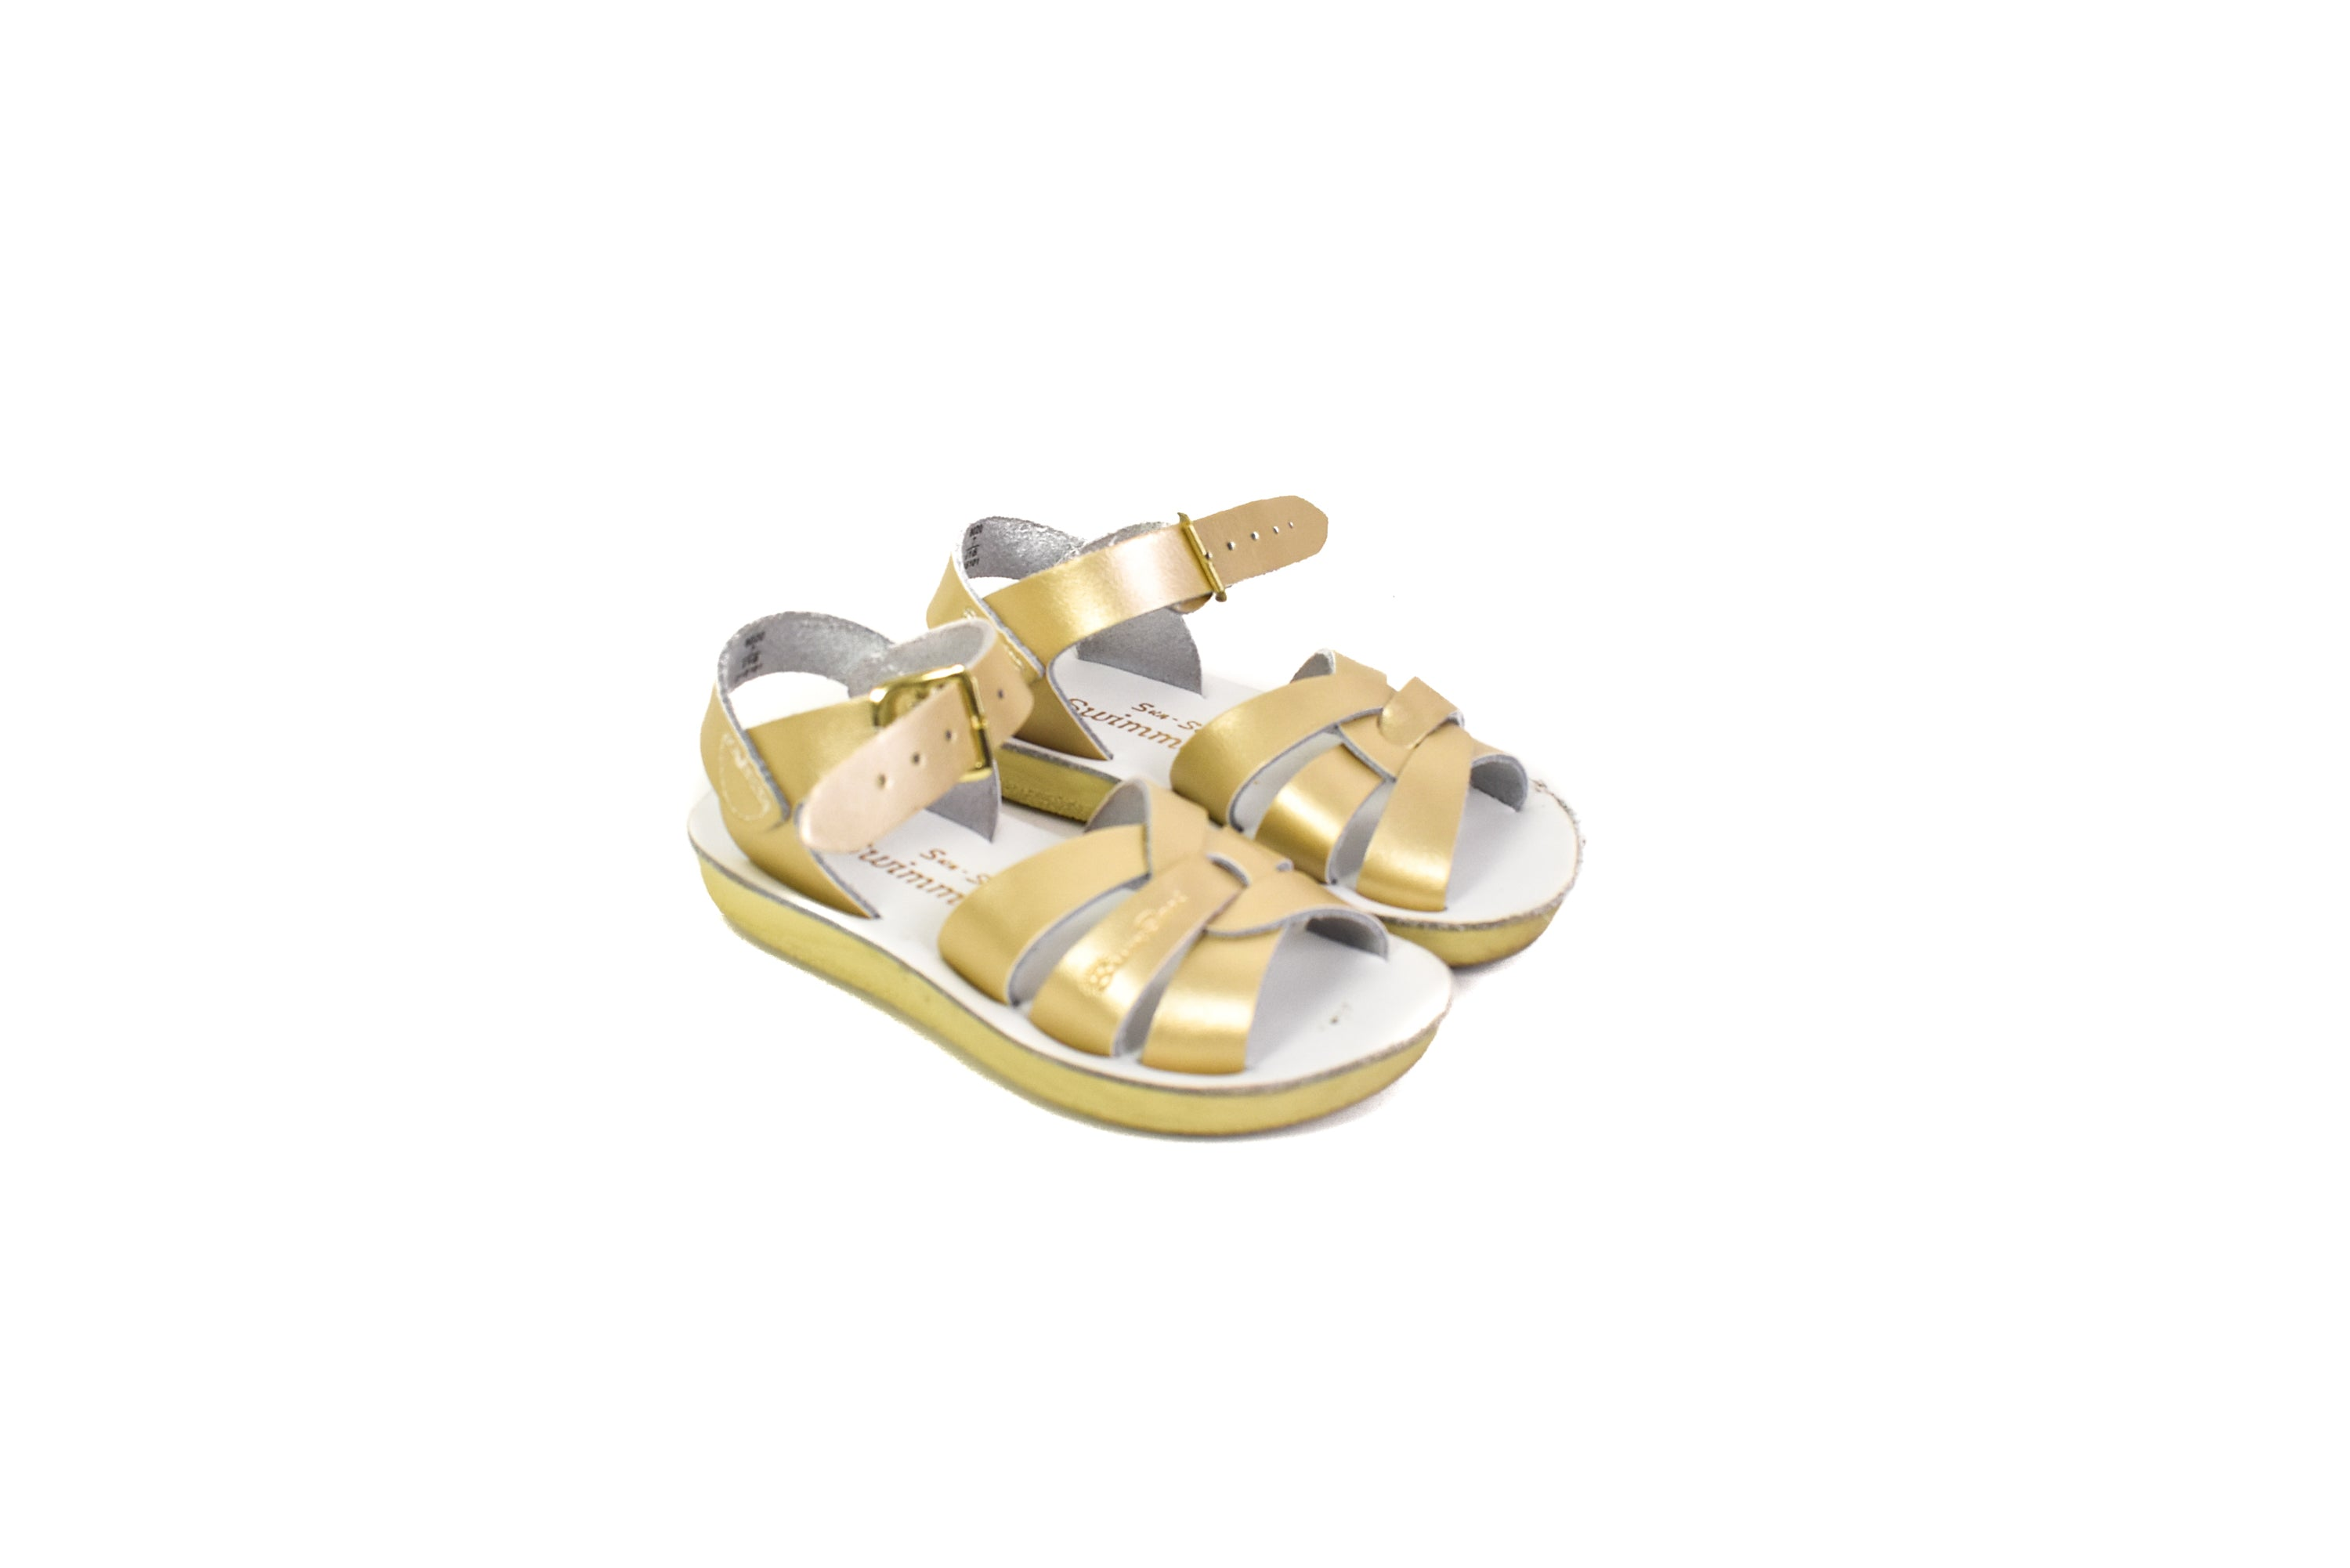 10013091 Sun-San Baby~Sandals 18-24M (US 7) at Retykle